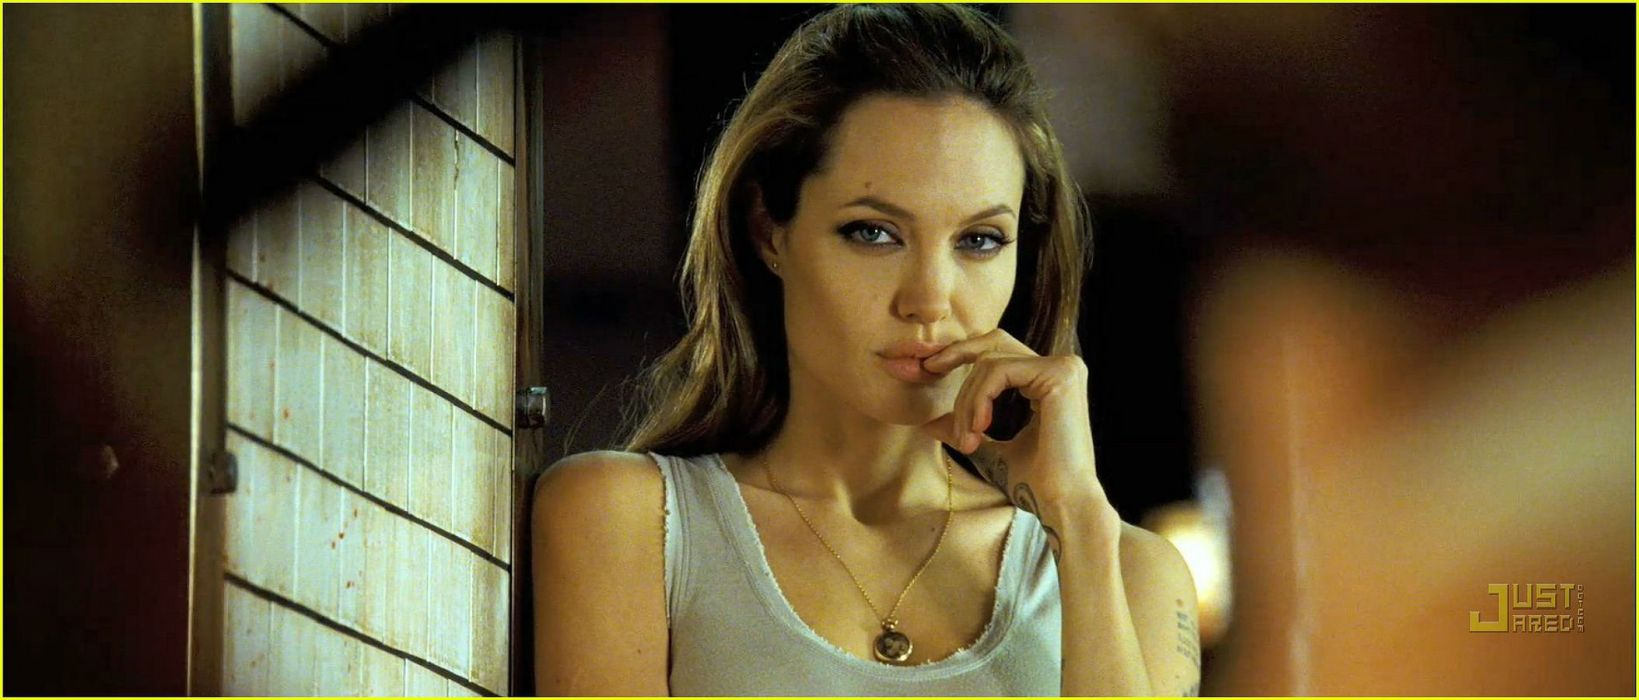 WANTED action crime fantasy sci-fi jolie (56) wallpaper